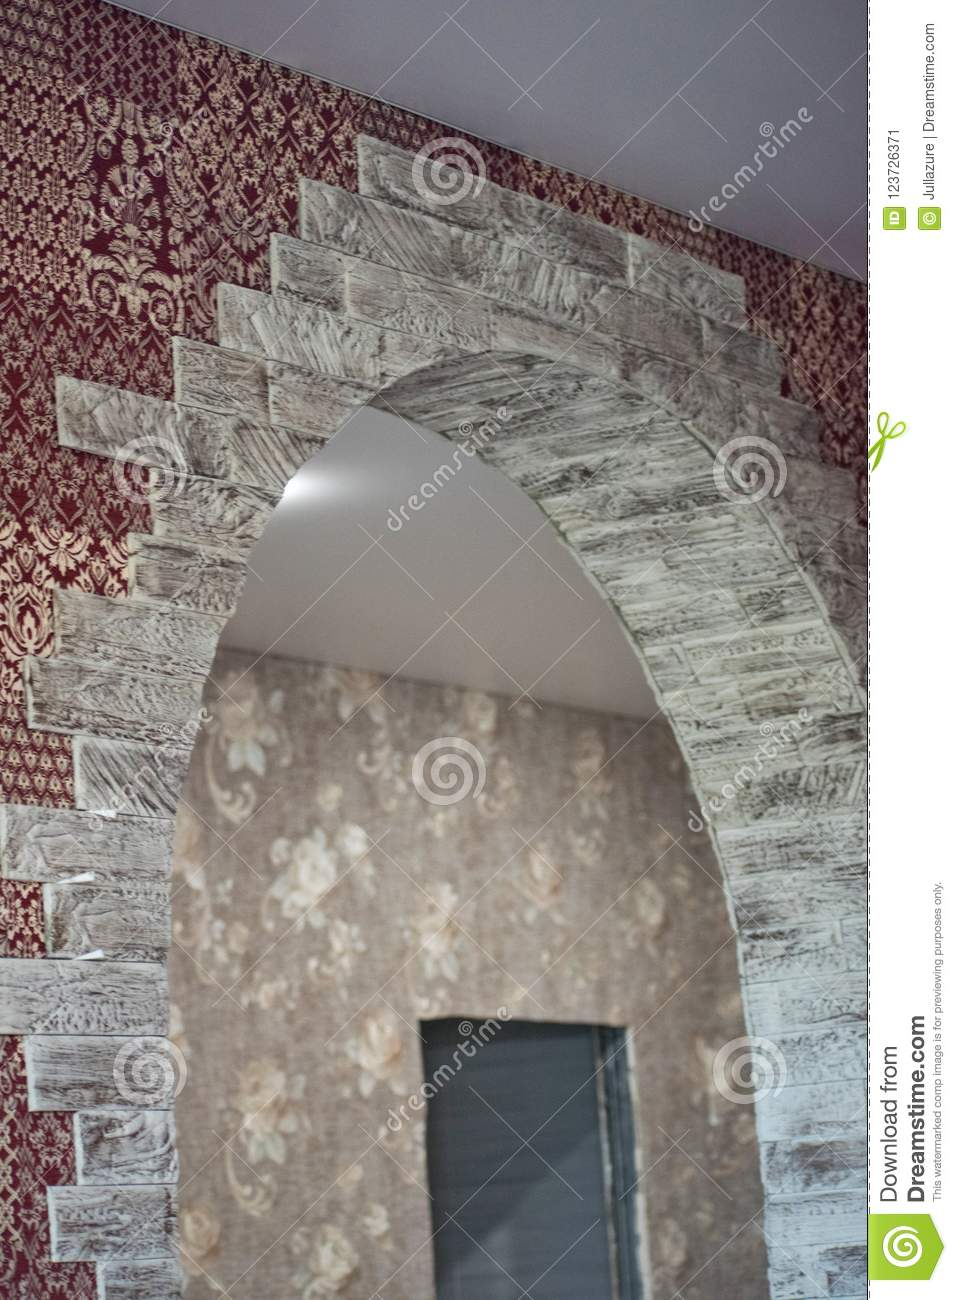 Wall Design Finishing Works In The House Decorative Stone